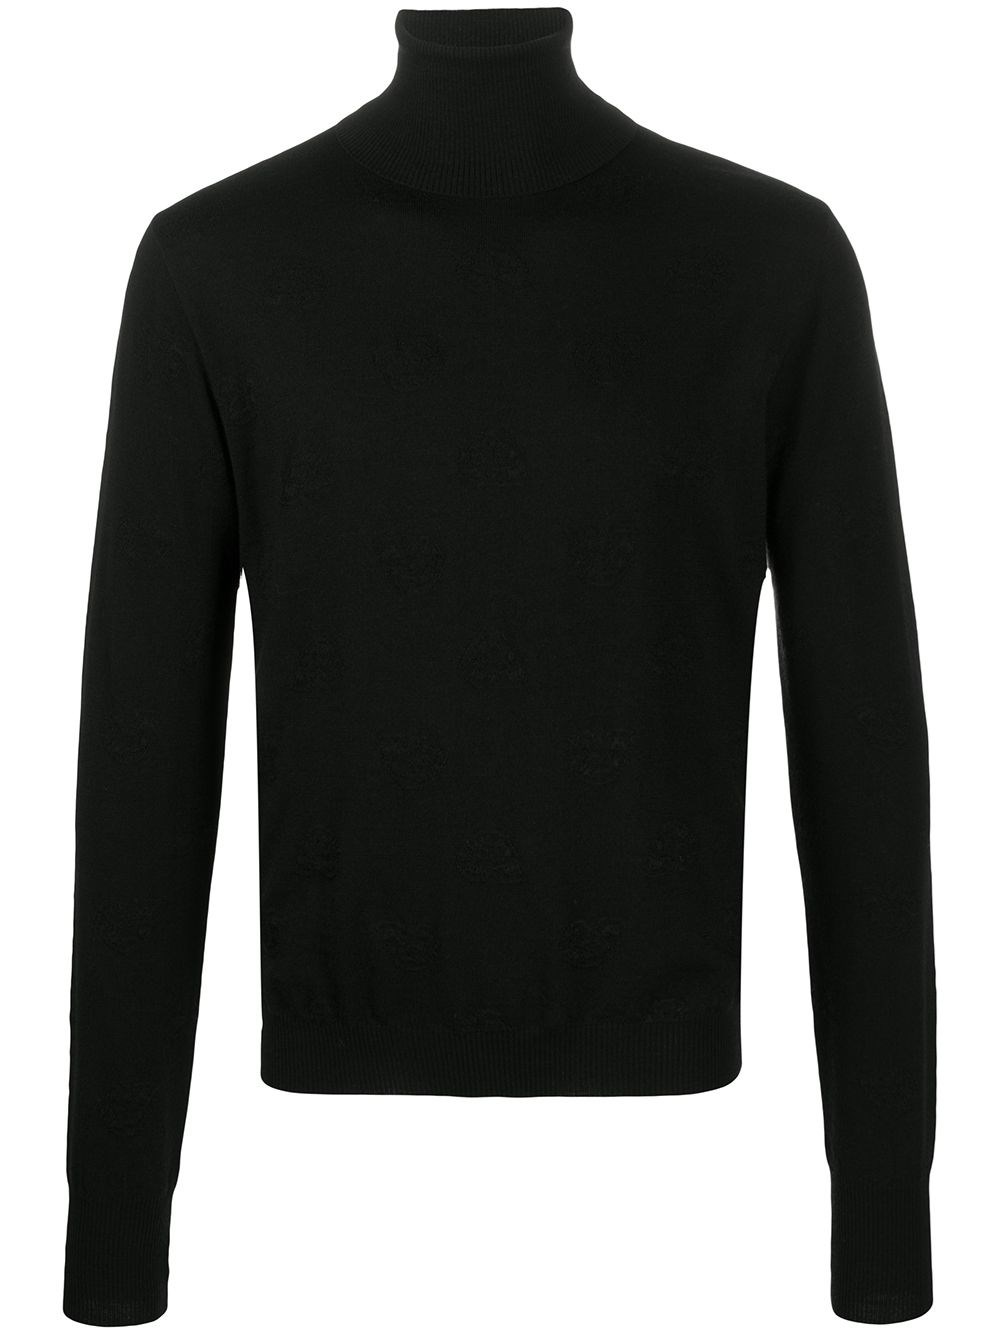 GABRIELE PASINI Black Turtle-Neck Sweater